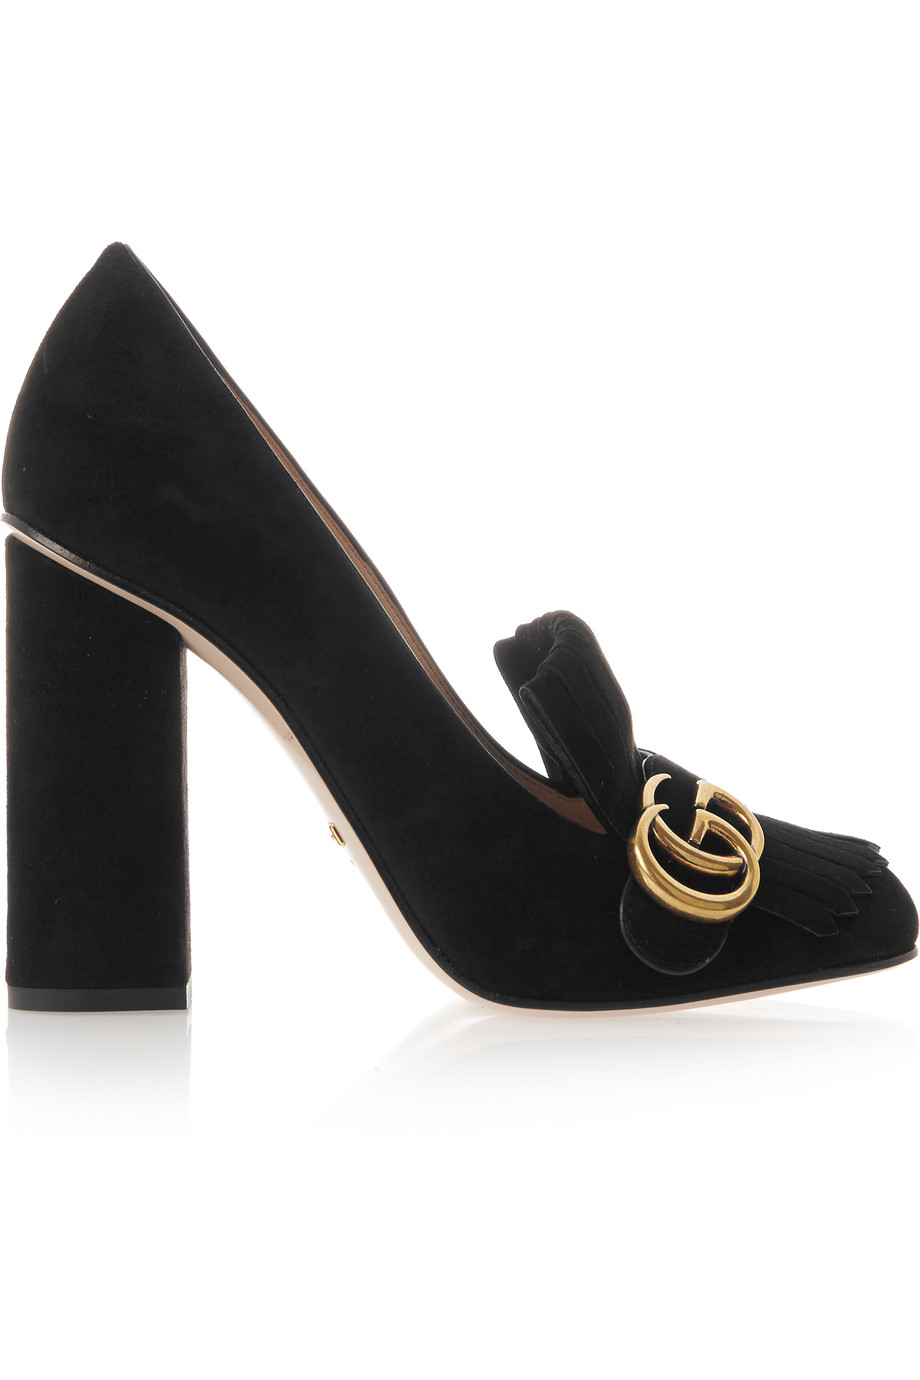 Gucci Fringed Suede Pumps, Black, Women's US Size: 11, Size: 41.5